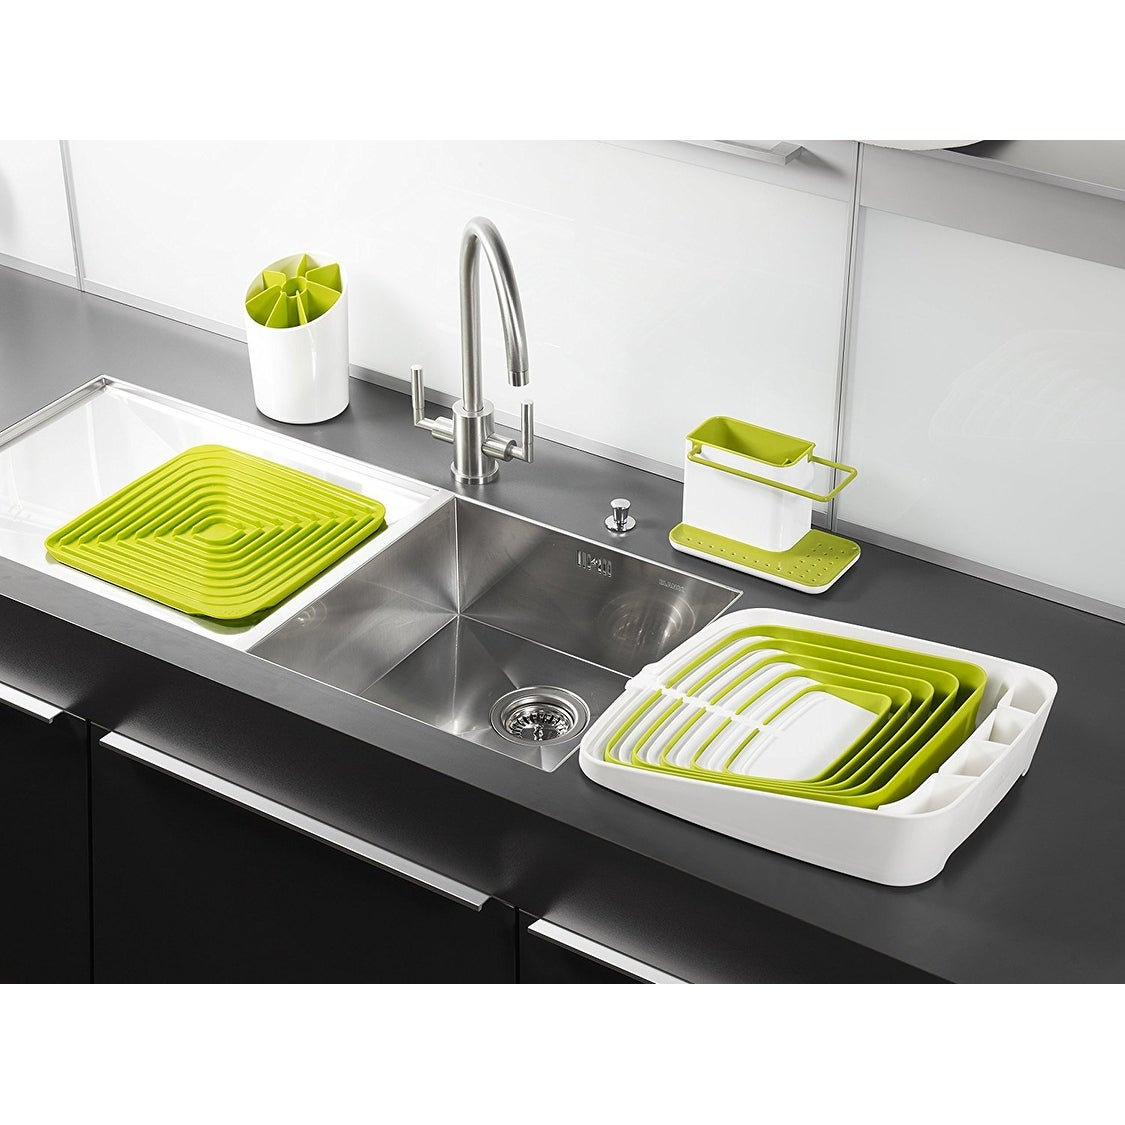 Joseph Joseph Sink Caddy Kitchen Sink Organizer Holder Green White On Sale Overstock 17817375